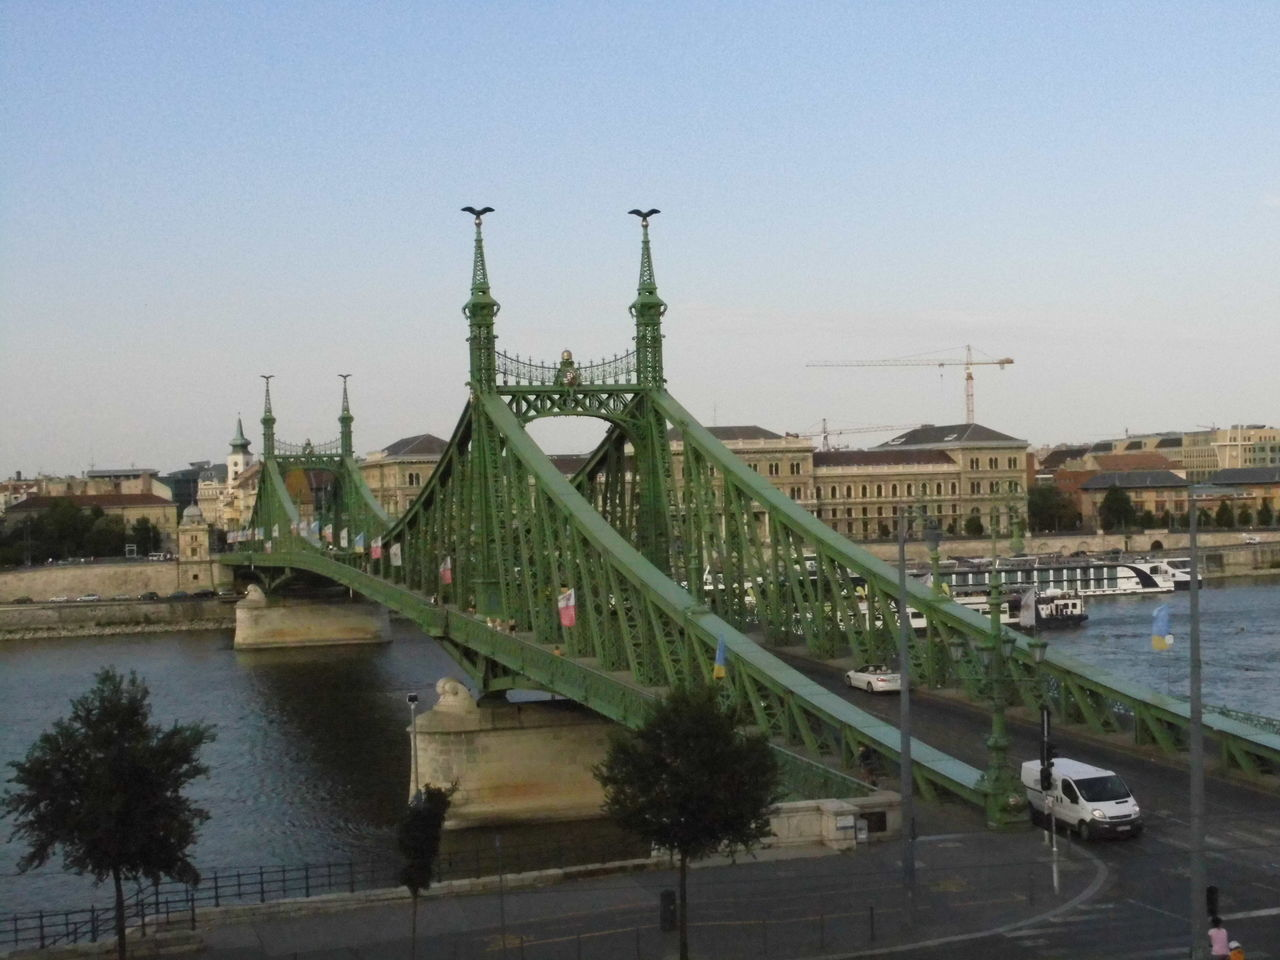 architecture, water, built structure, outdoors, river, clear sky, bridge - man made structure, travel destinations, sky, transportation, day, building exterior, no people, tree, nature, city, chain bridge